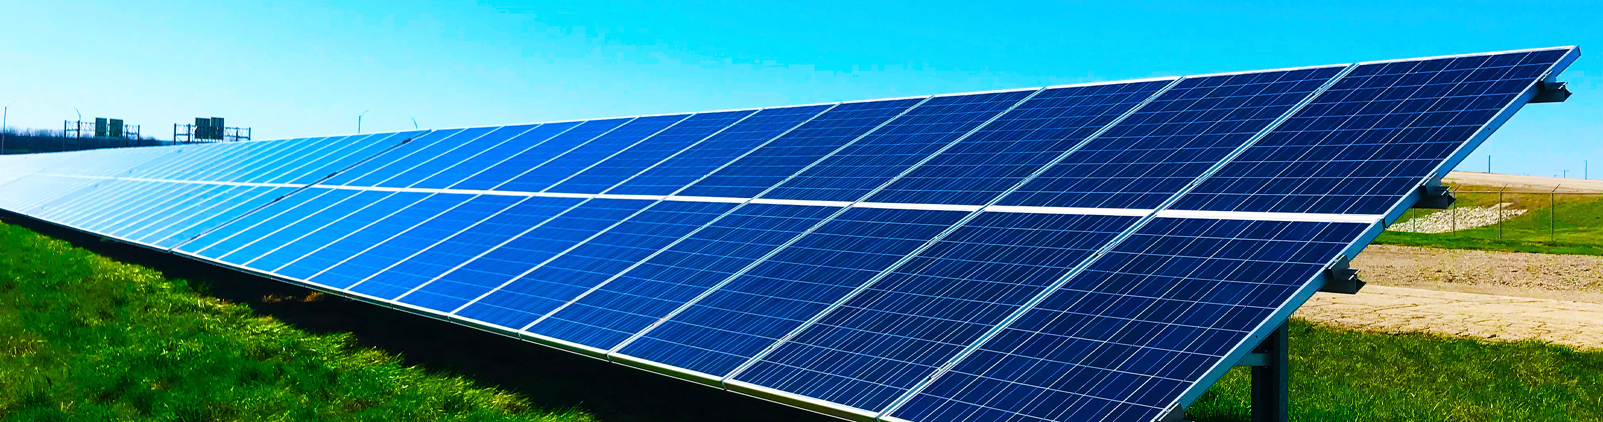 Image of solar panels - banner image